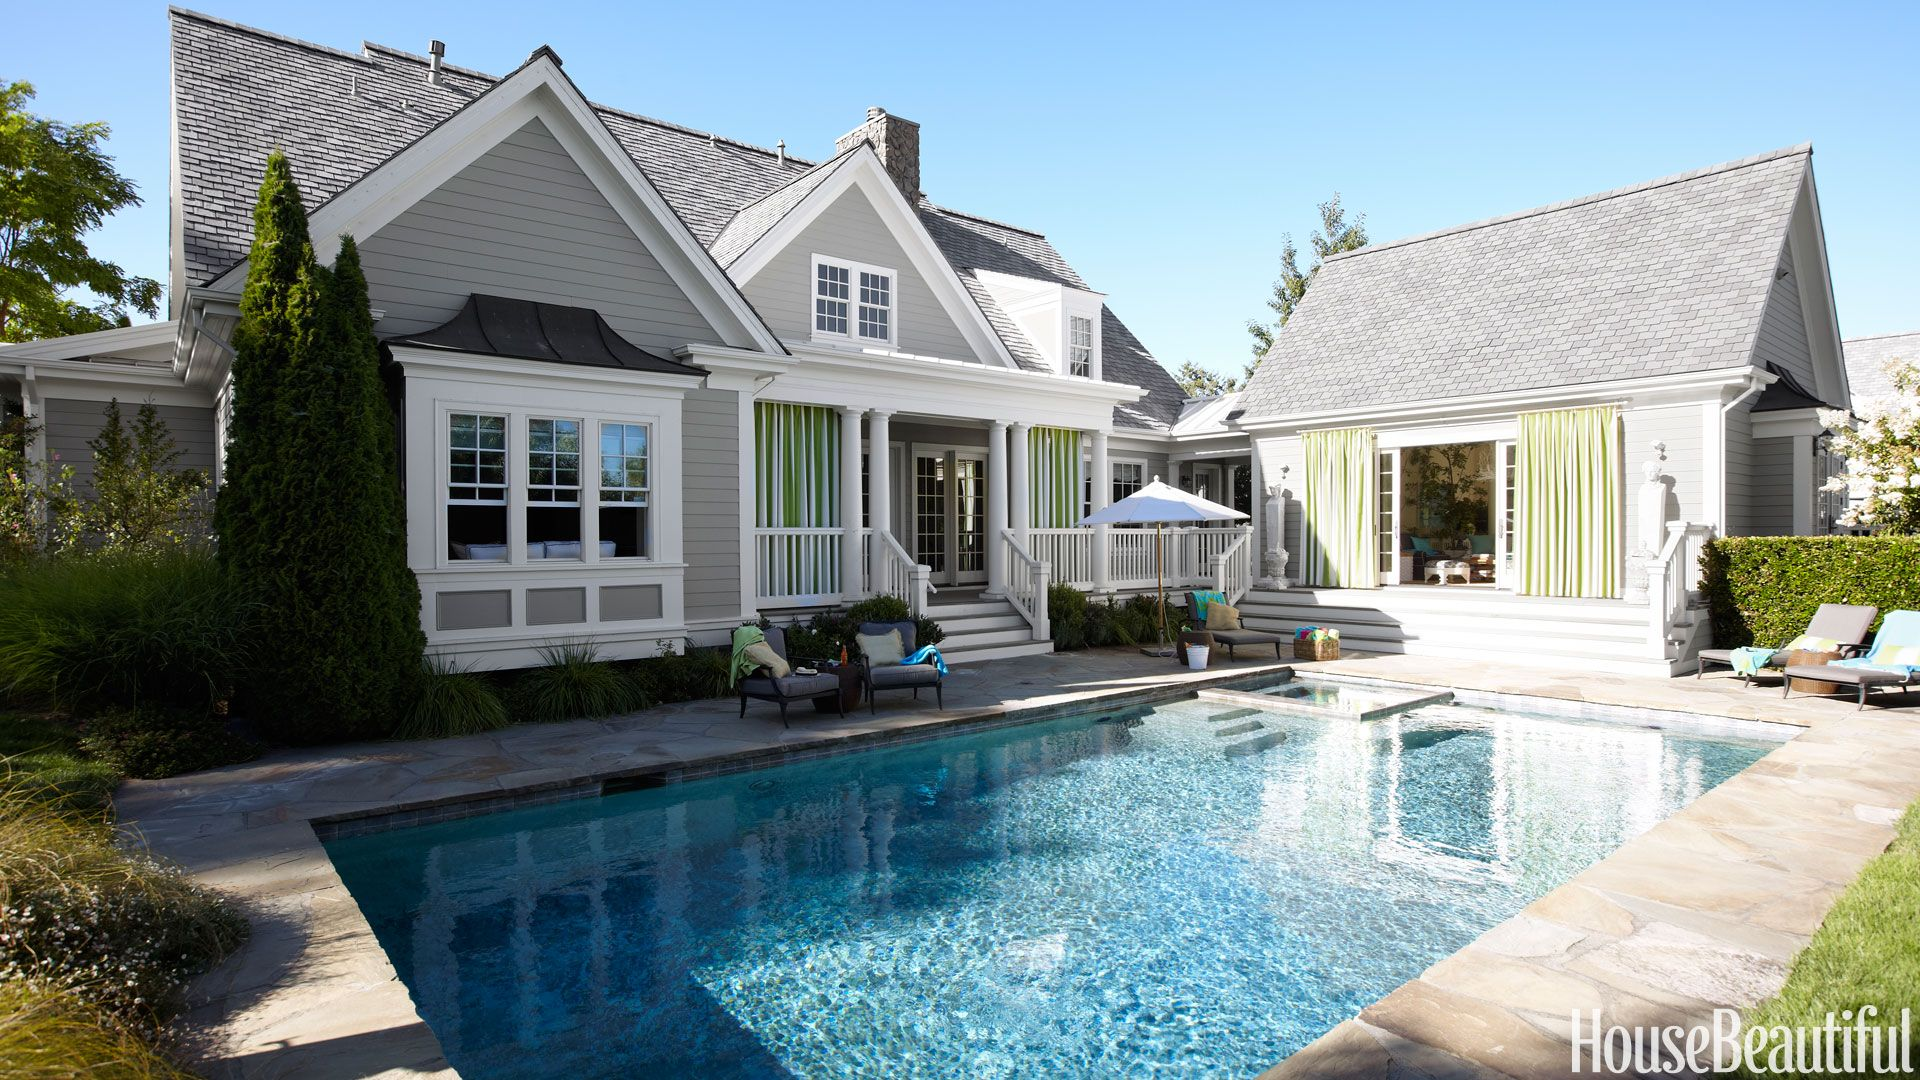 40 pool designs ideas for beautiful swimming pools - Outdoor Backyard Pools